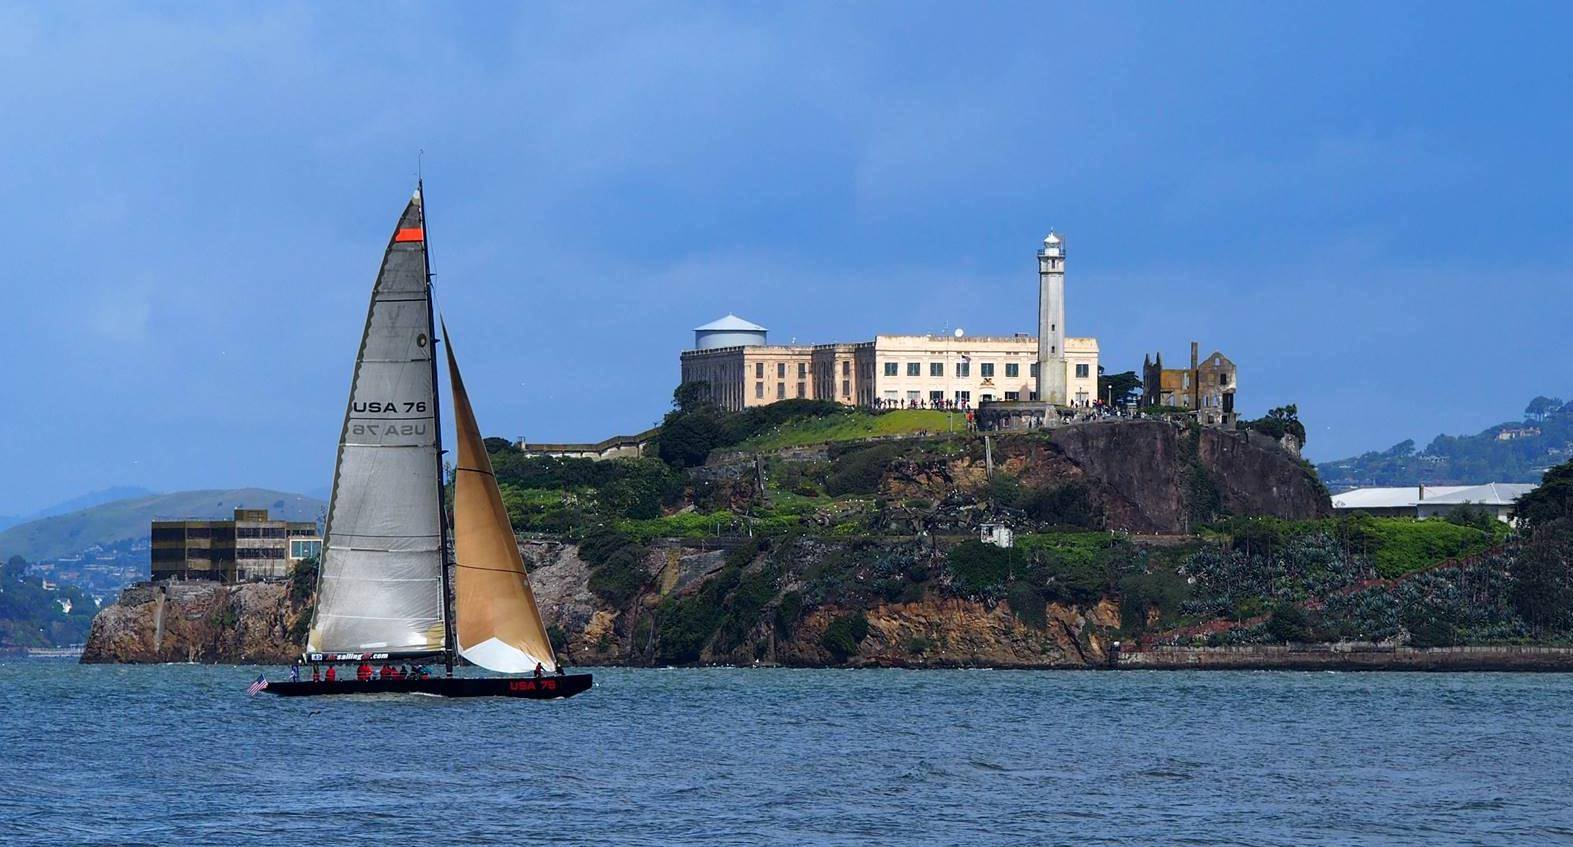 Alcatraz tours and Cruises on yacht USA 76